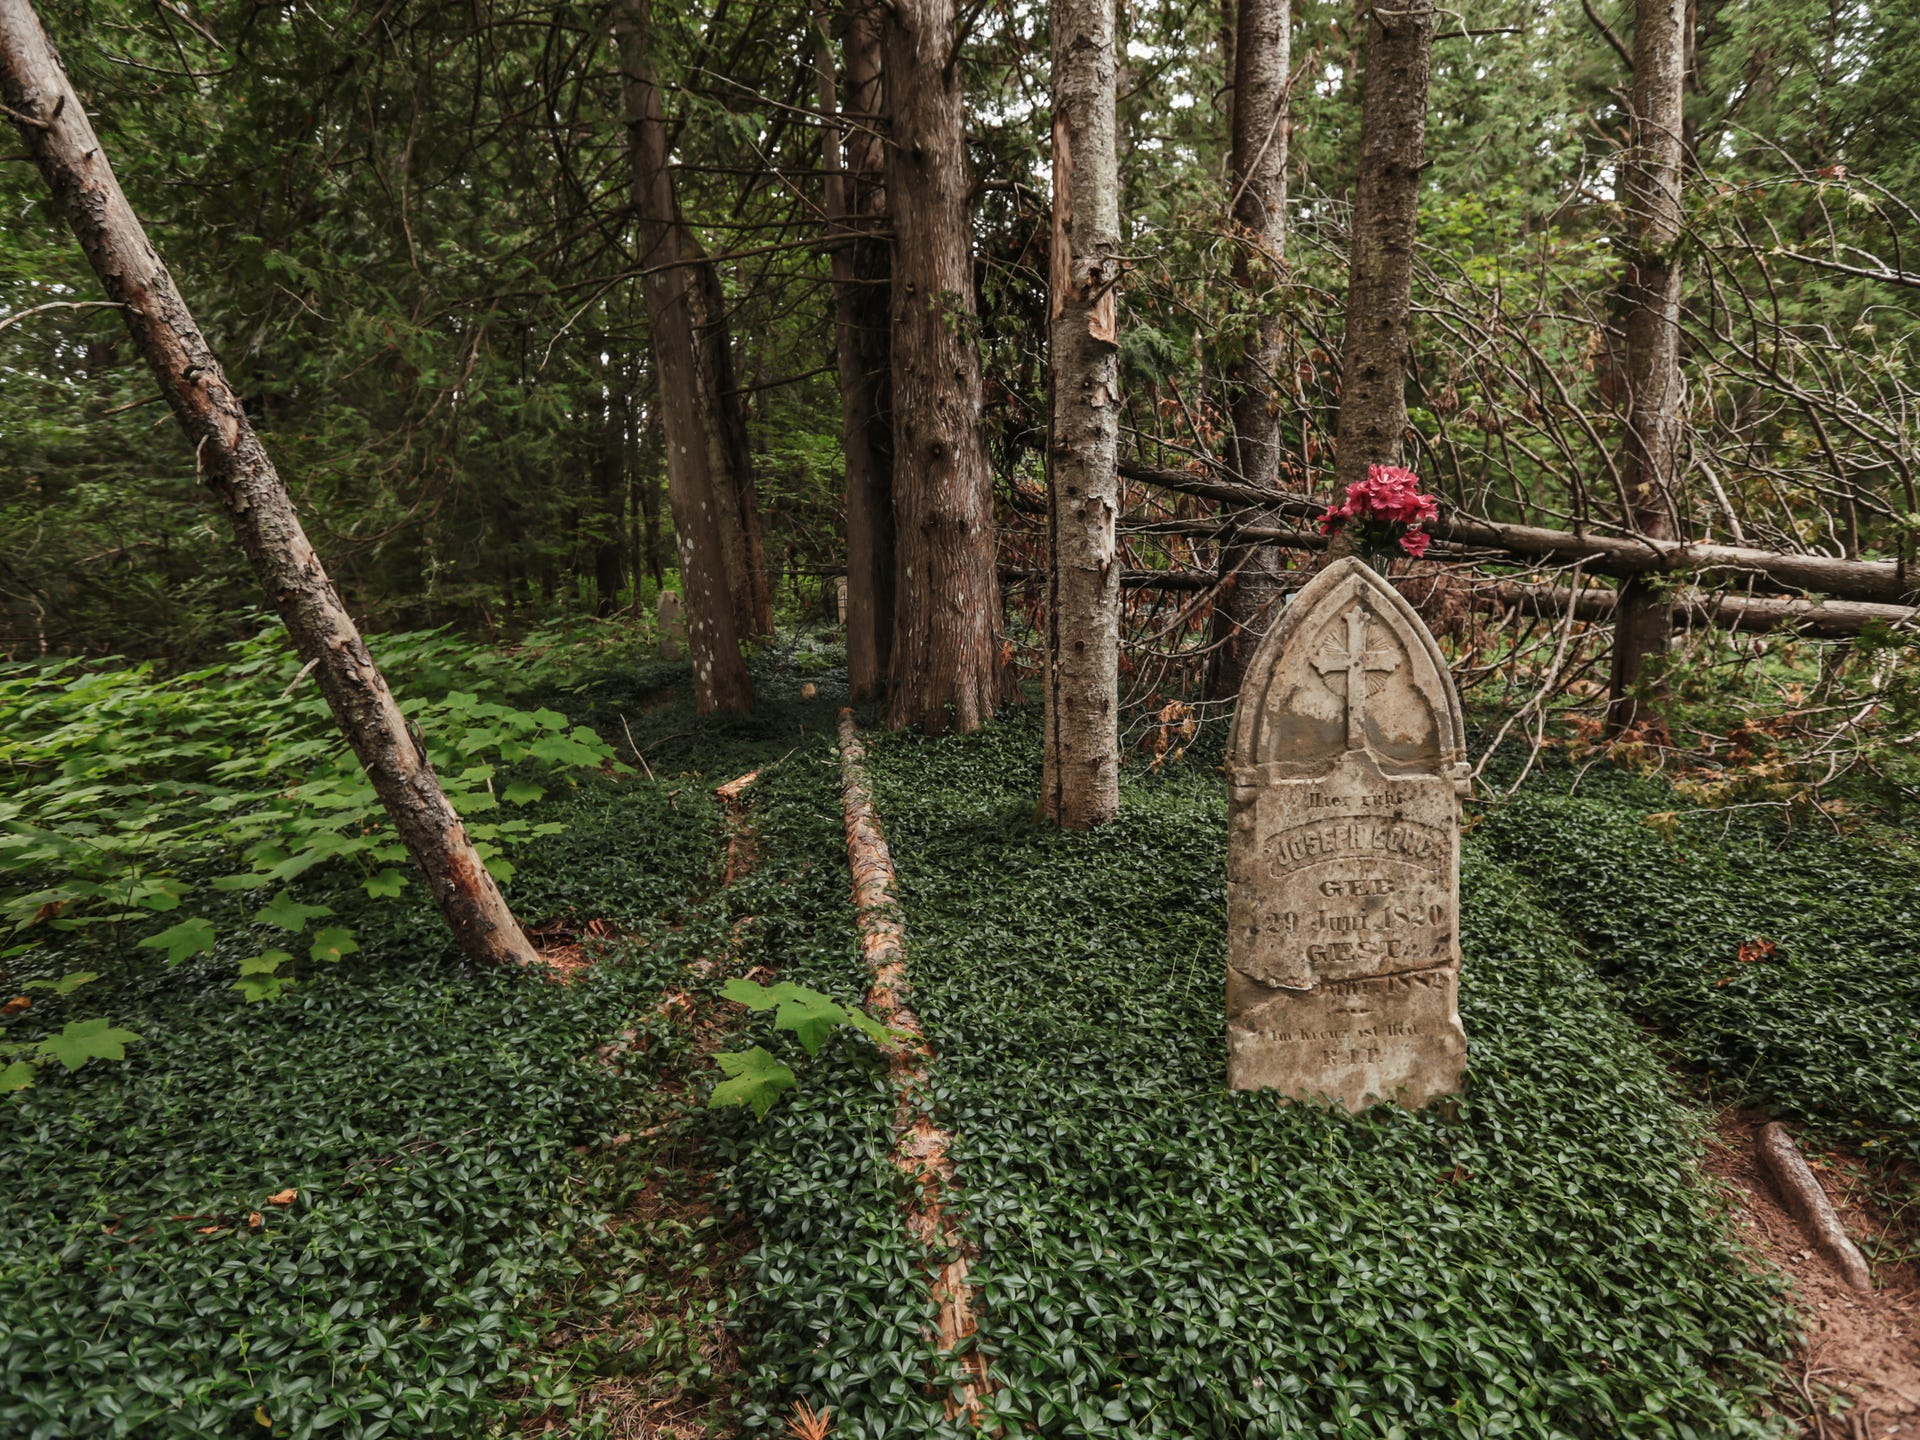 A tombstone rises above myrtle growing in the forest